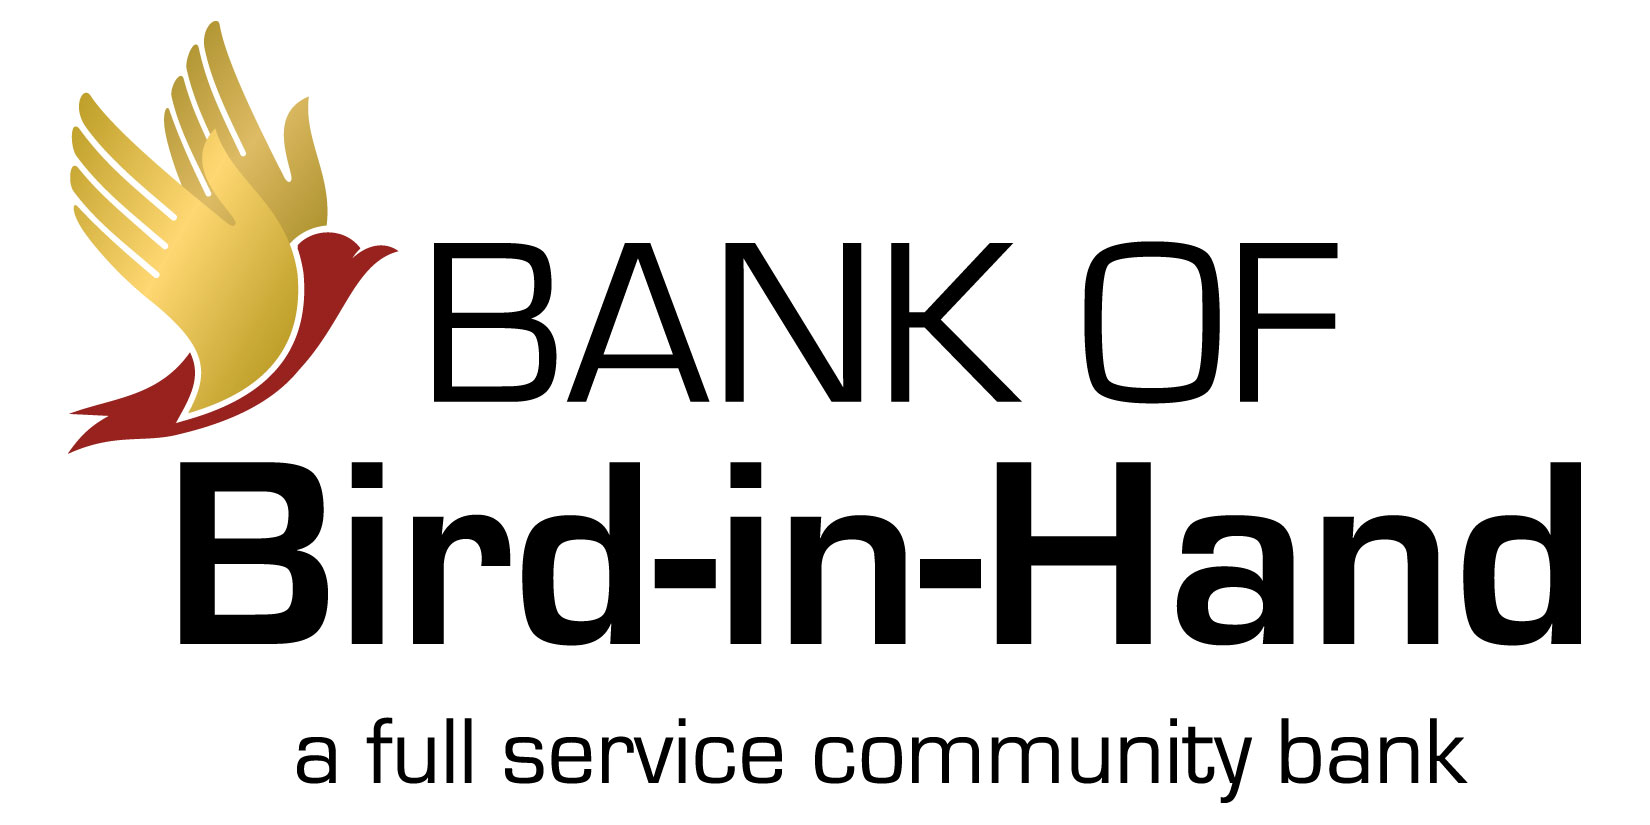 Bank of Bird-in-Hand logo